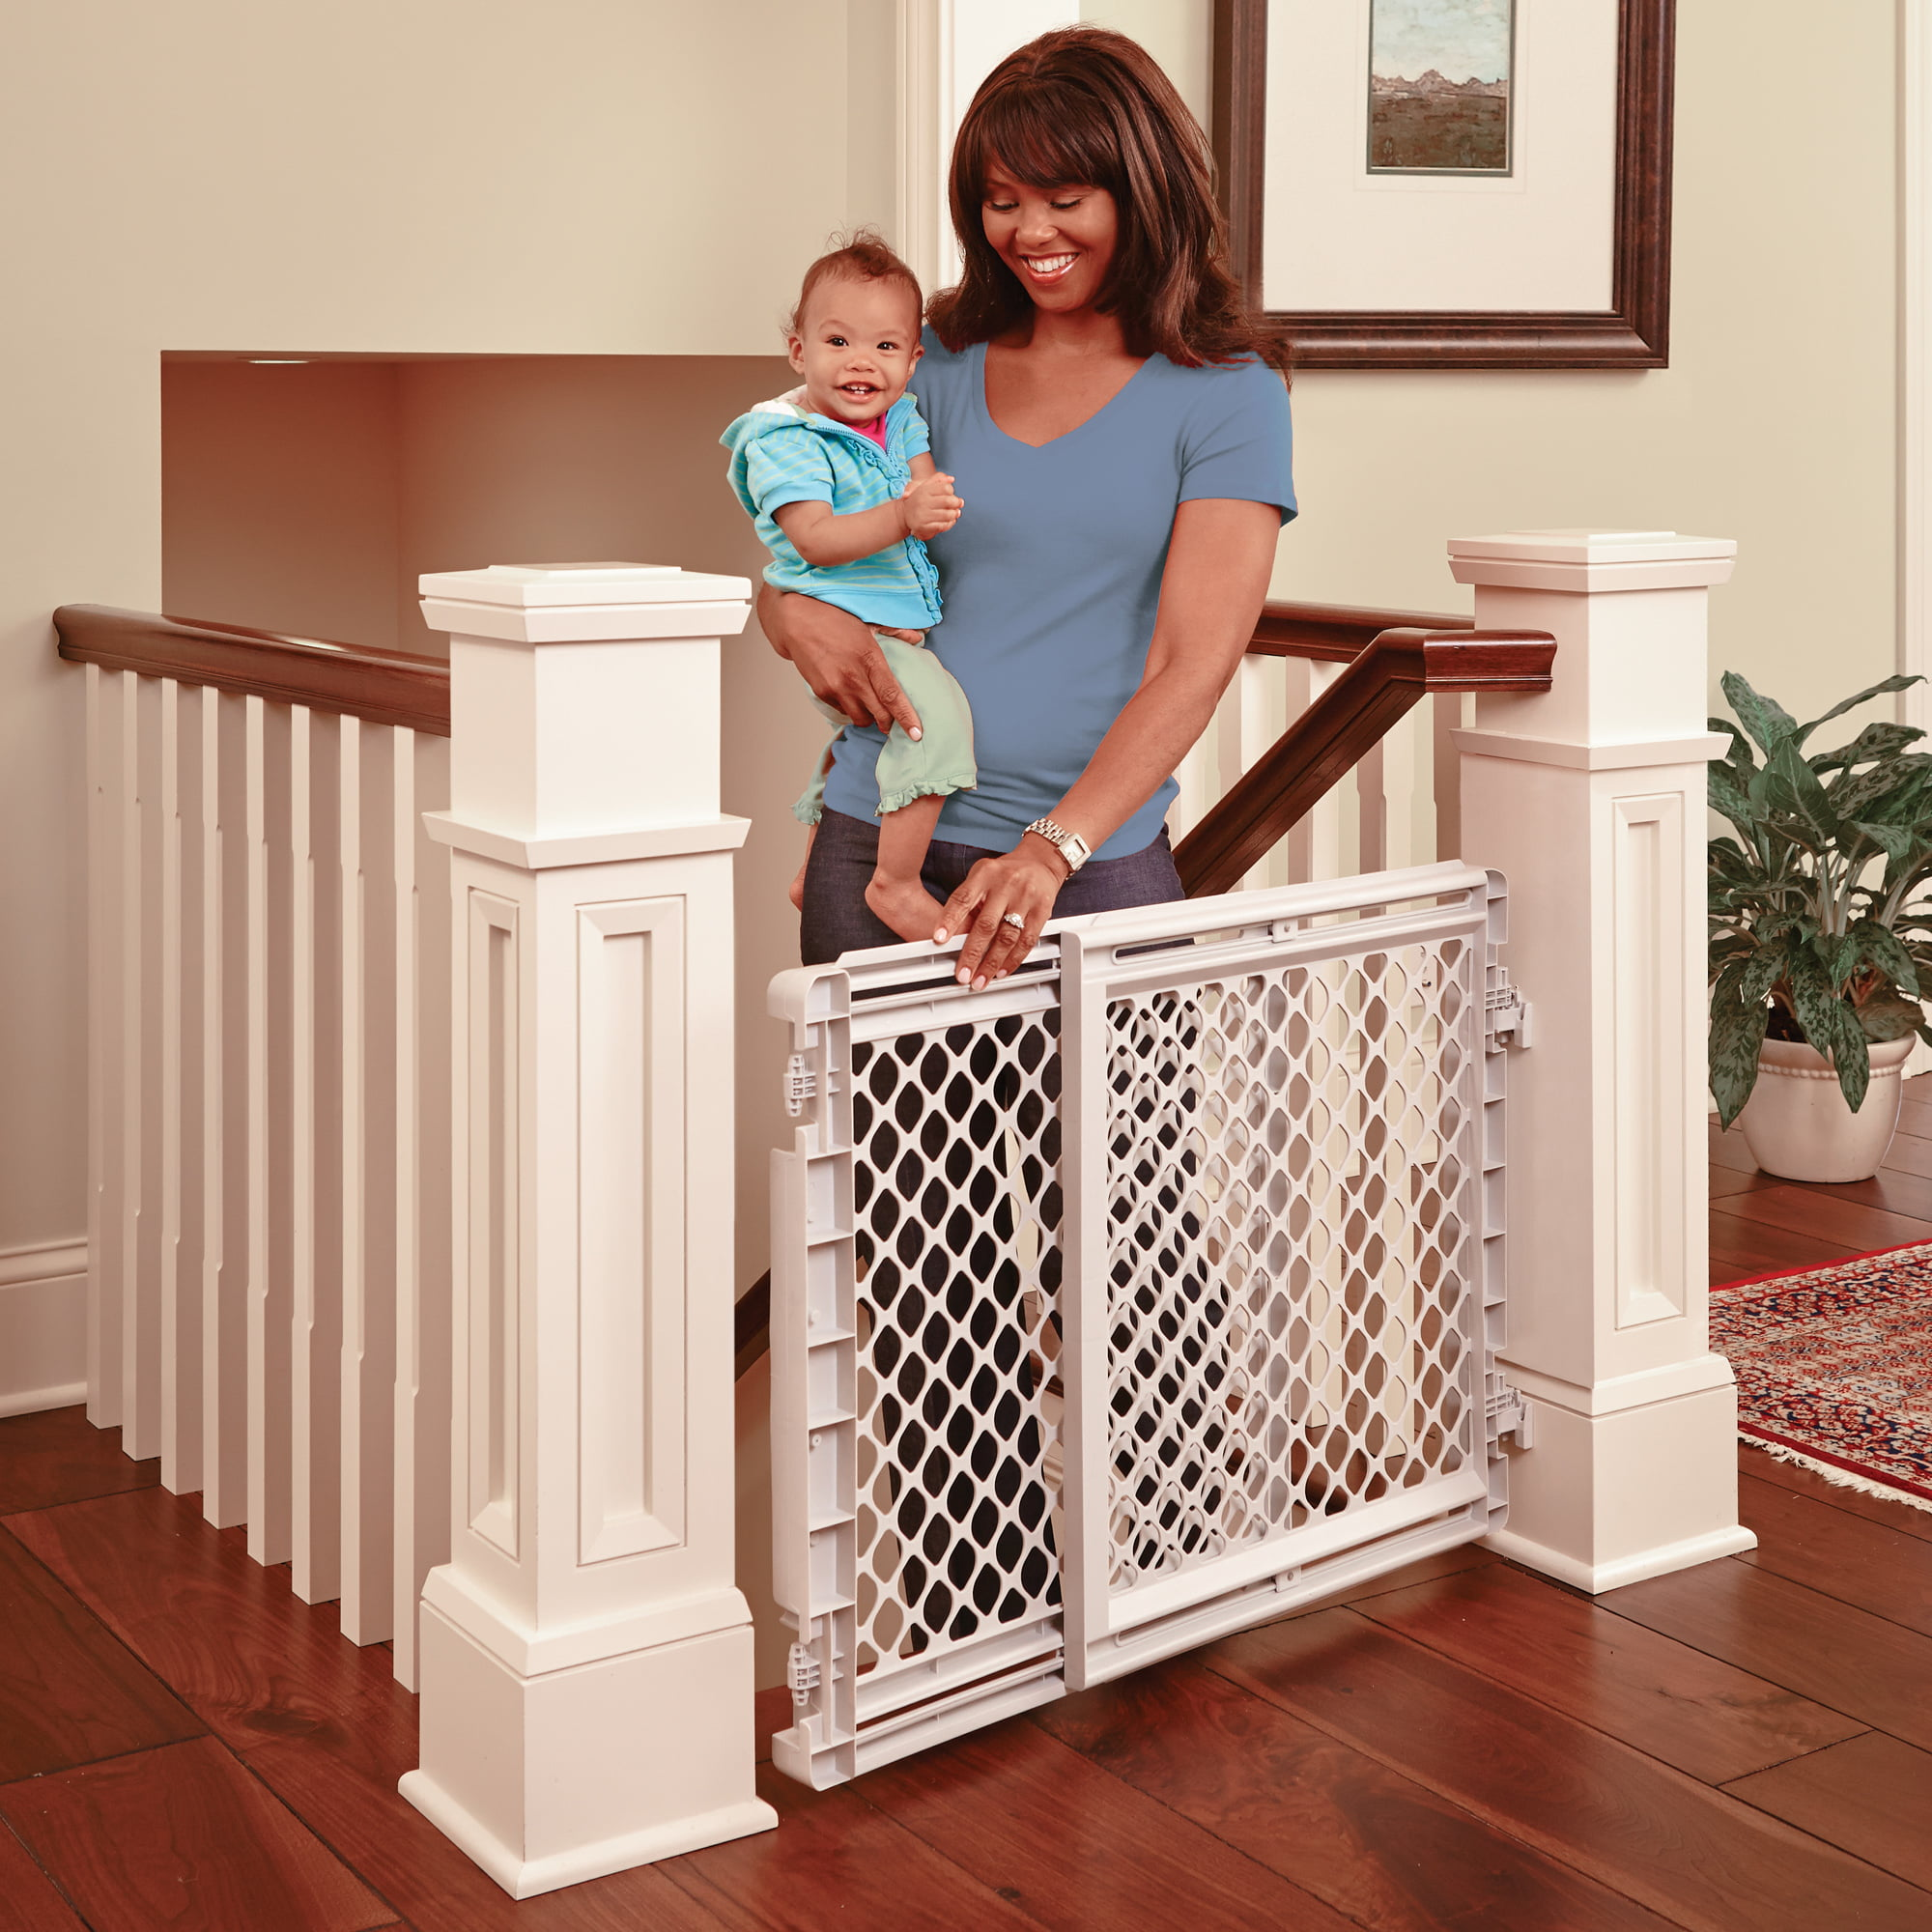 Toddleroo By North States Heavy Duty Stairway Baby Gate 27 41 Wide Light Gray Walmart Com Walmart Com